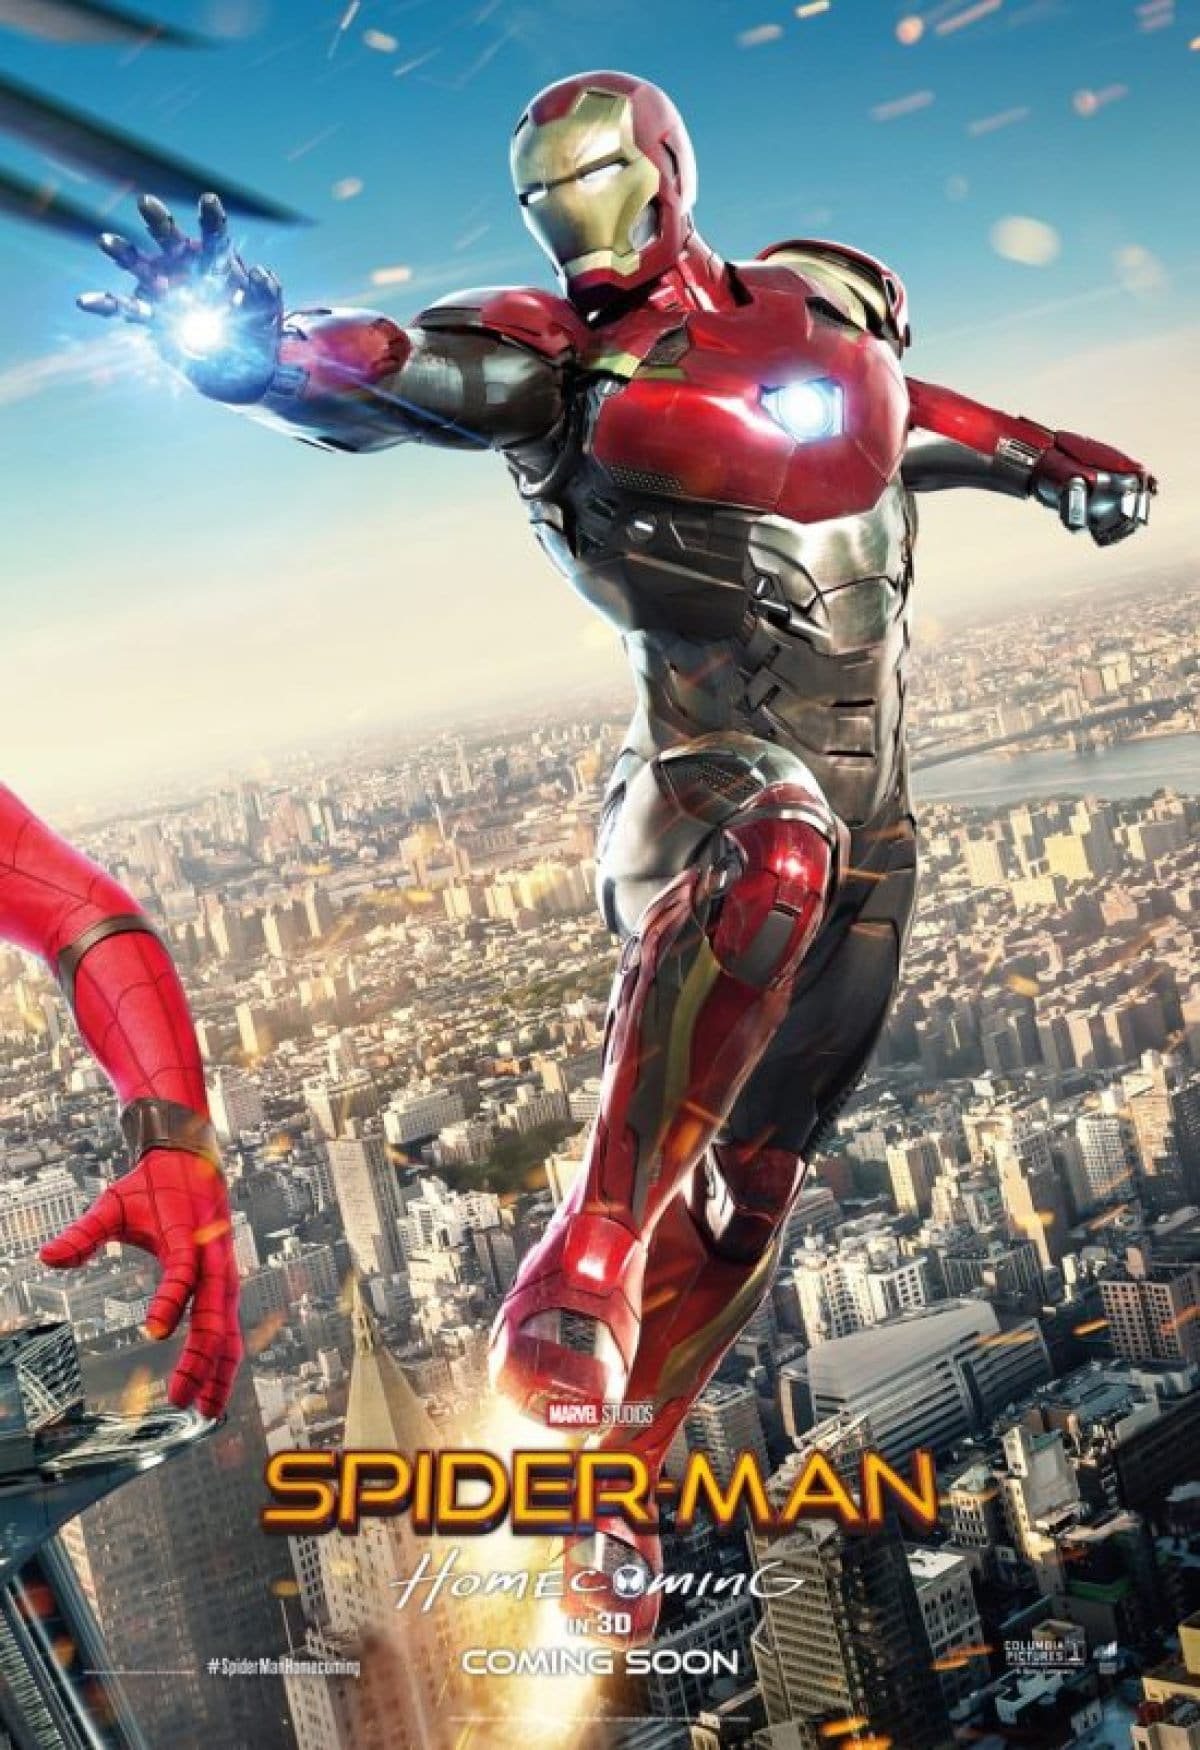 spiderman homecoming poster high quality HD printable wallpapers iron man in spiderman action fighting